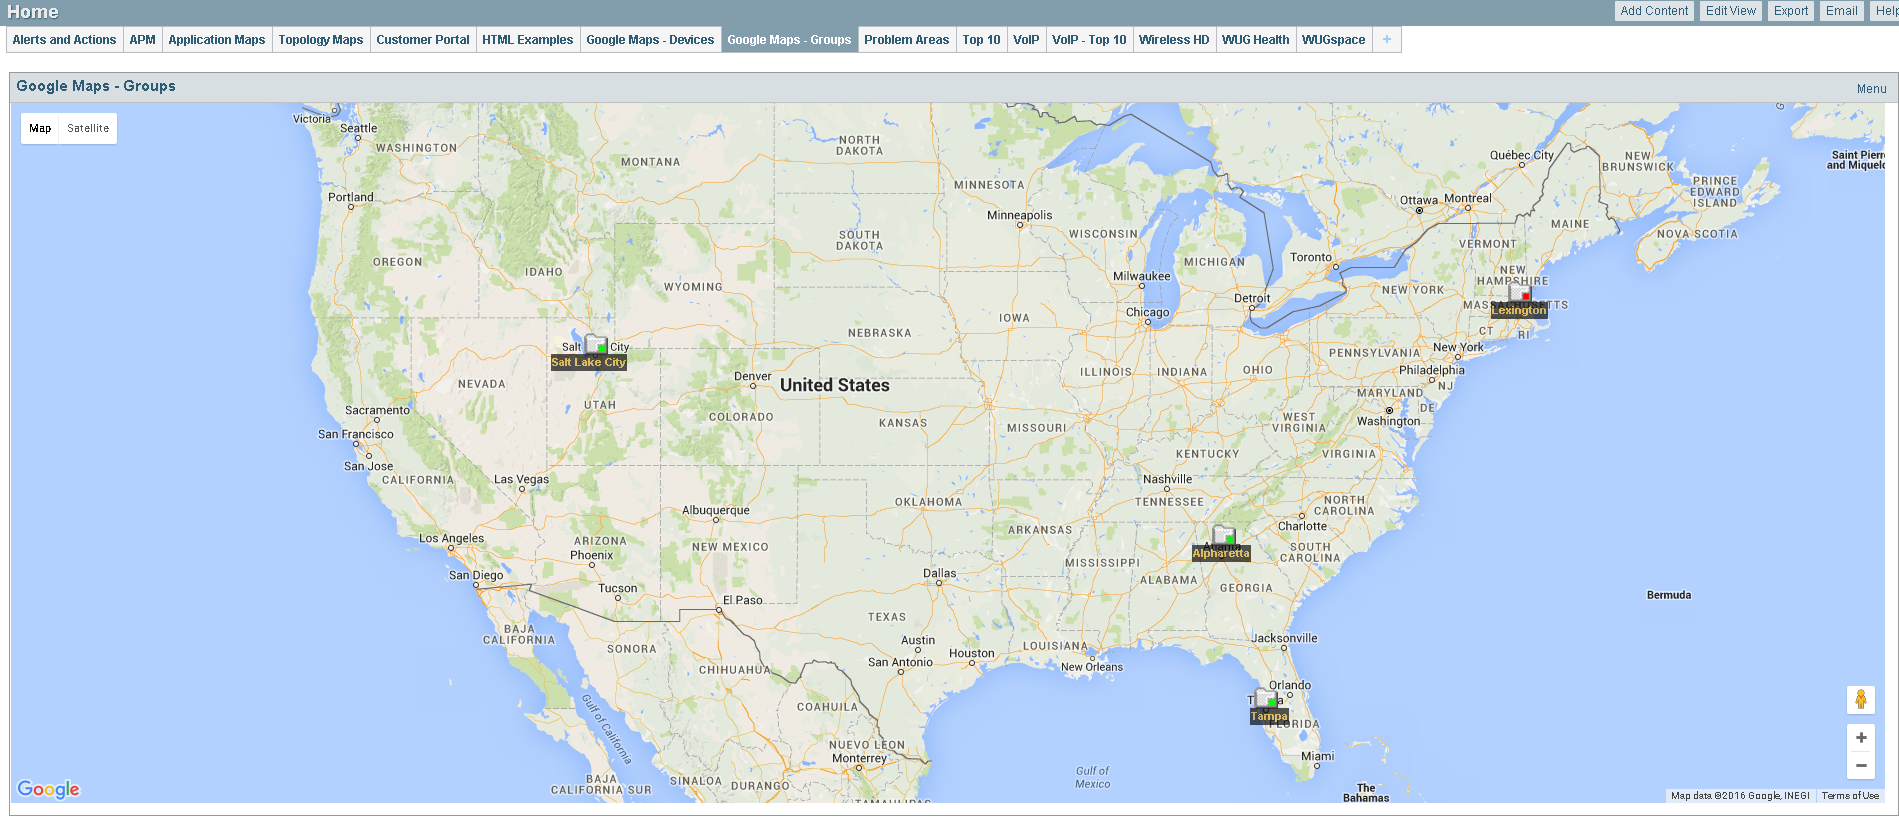 Google Maps Of United States Diagrams Free Printable Images - United states google map